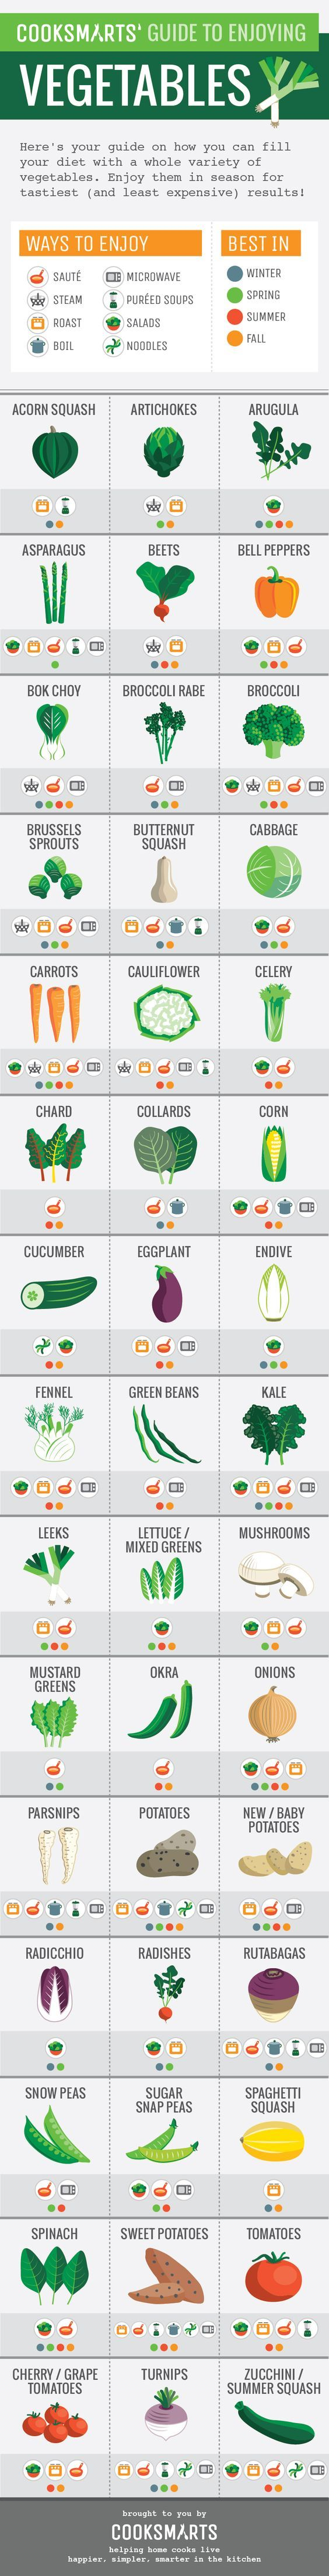 Guide to Enjoying Vegetables | Cooking Tips | Cooking Guides